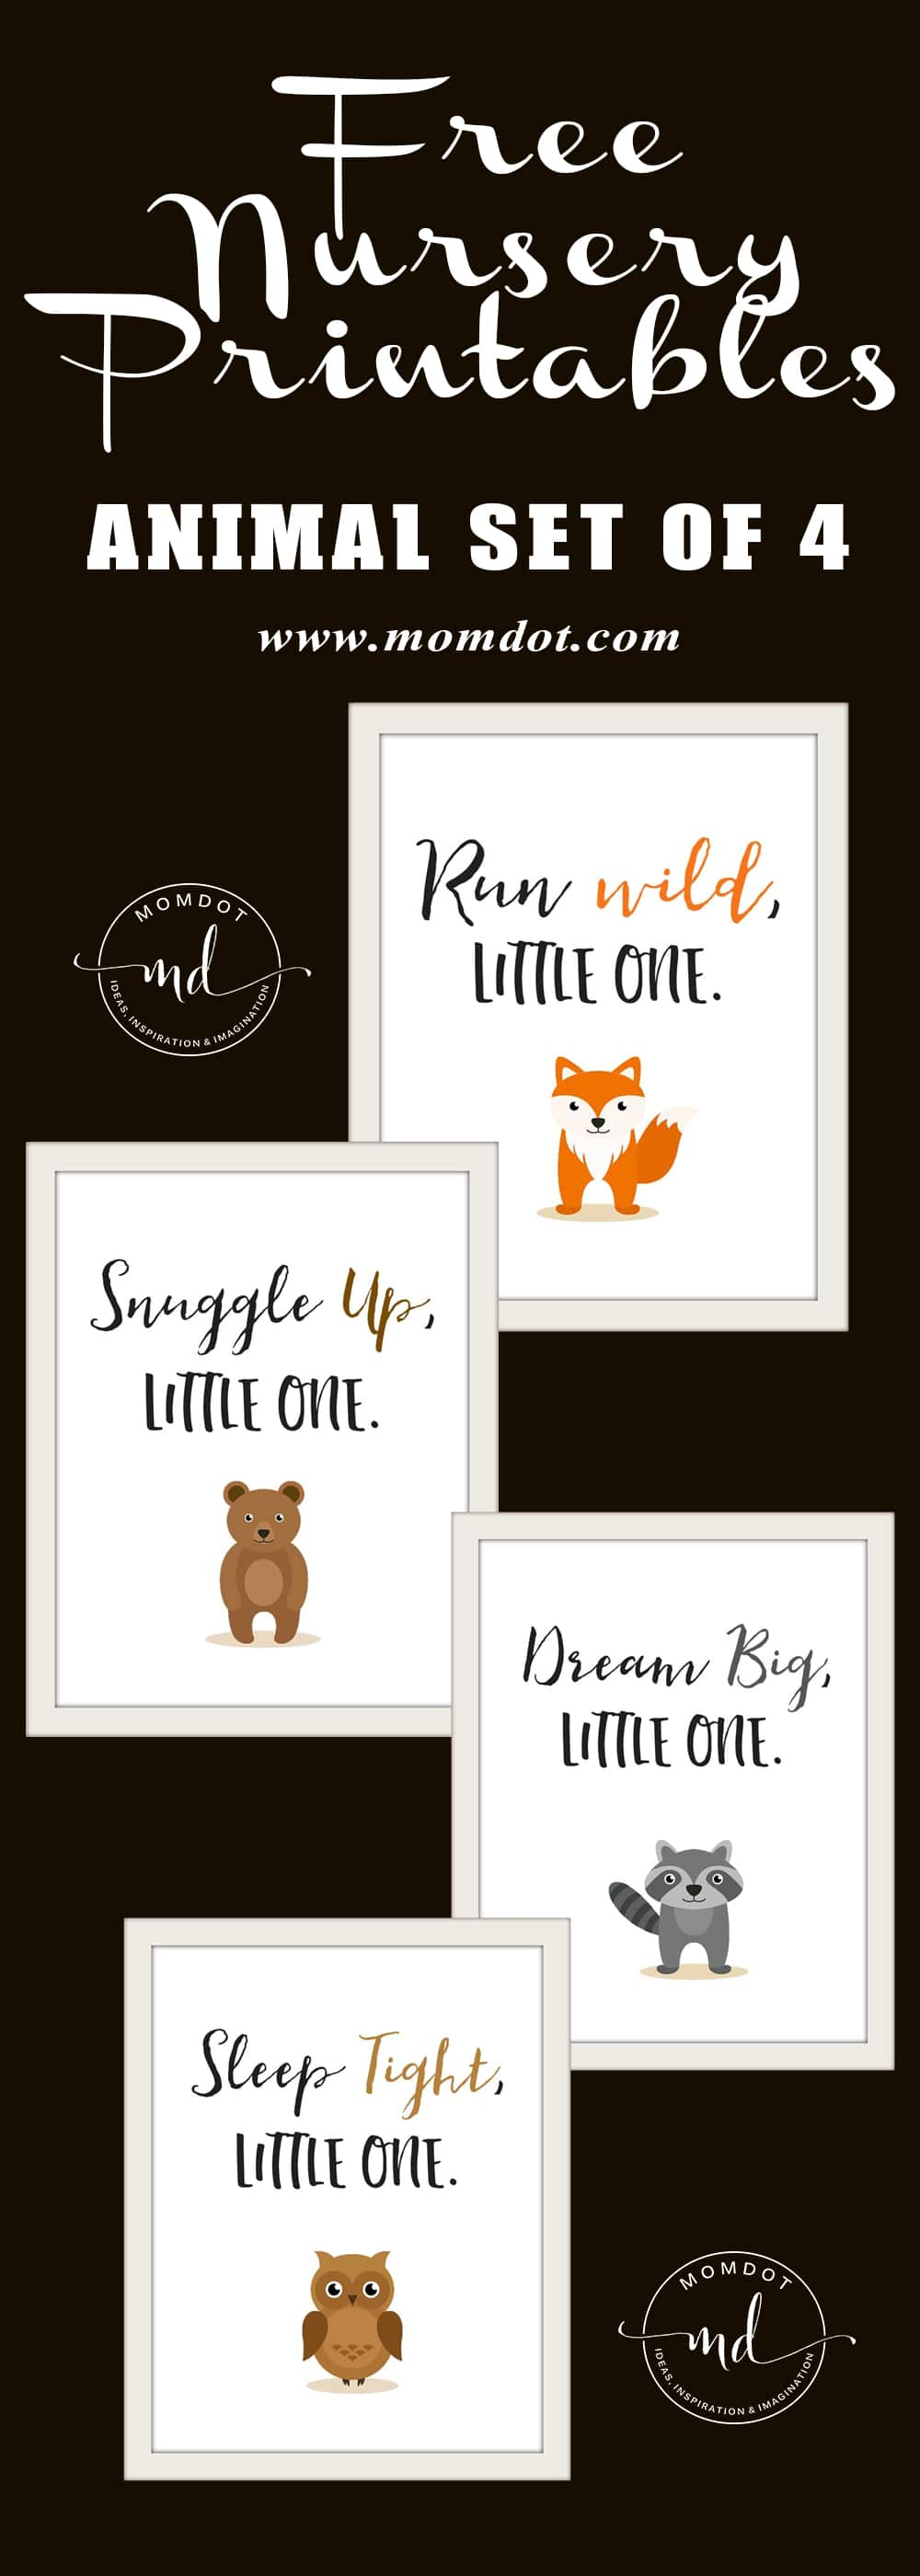 image regarding Would You Rather Cards Printable identified as Absolutely free Nursery Printables: Animal Fixed of 4 -